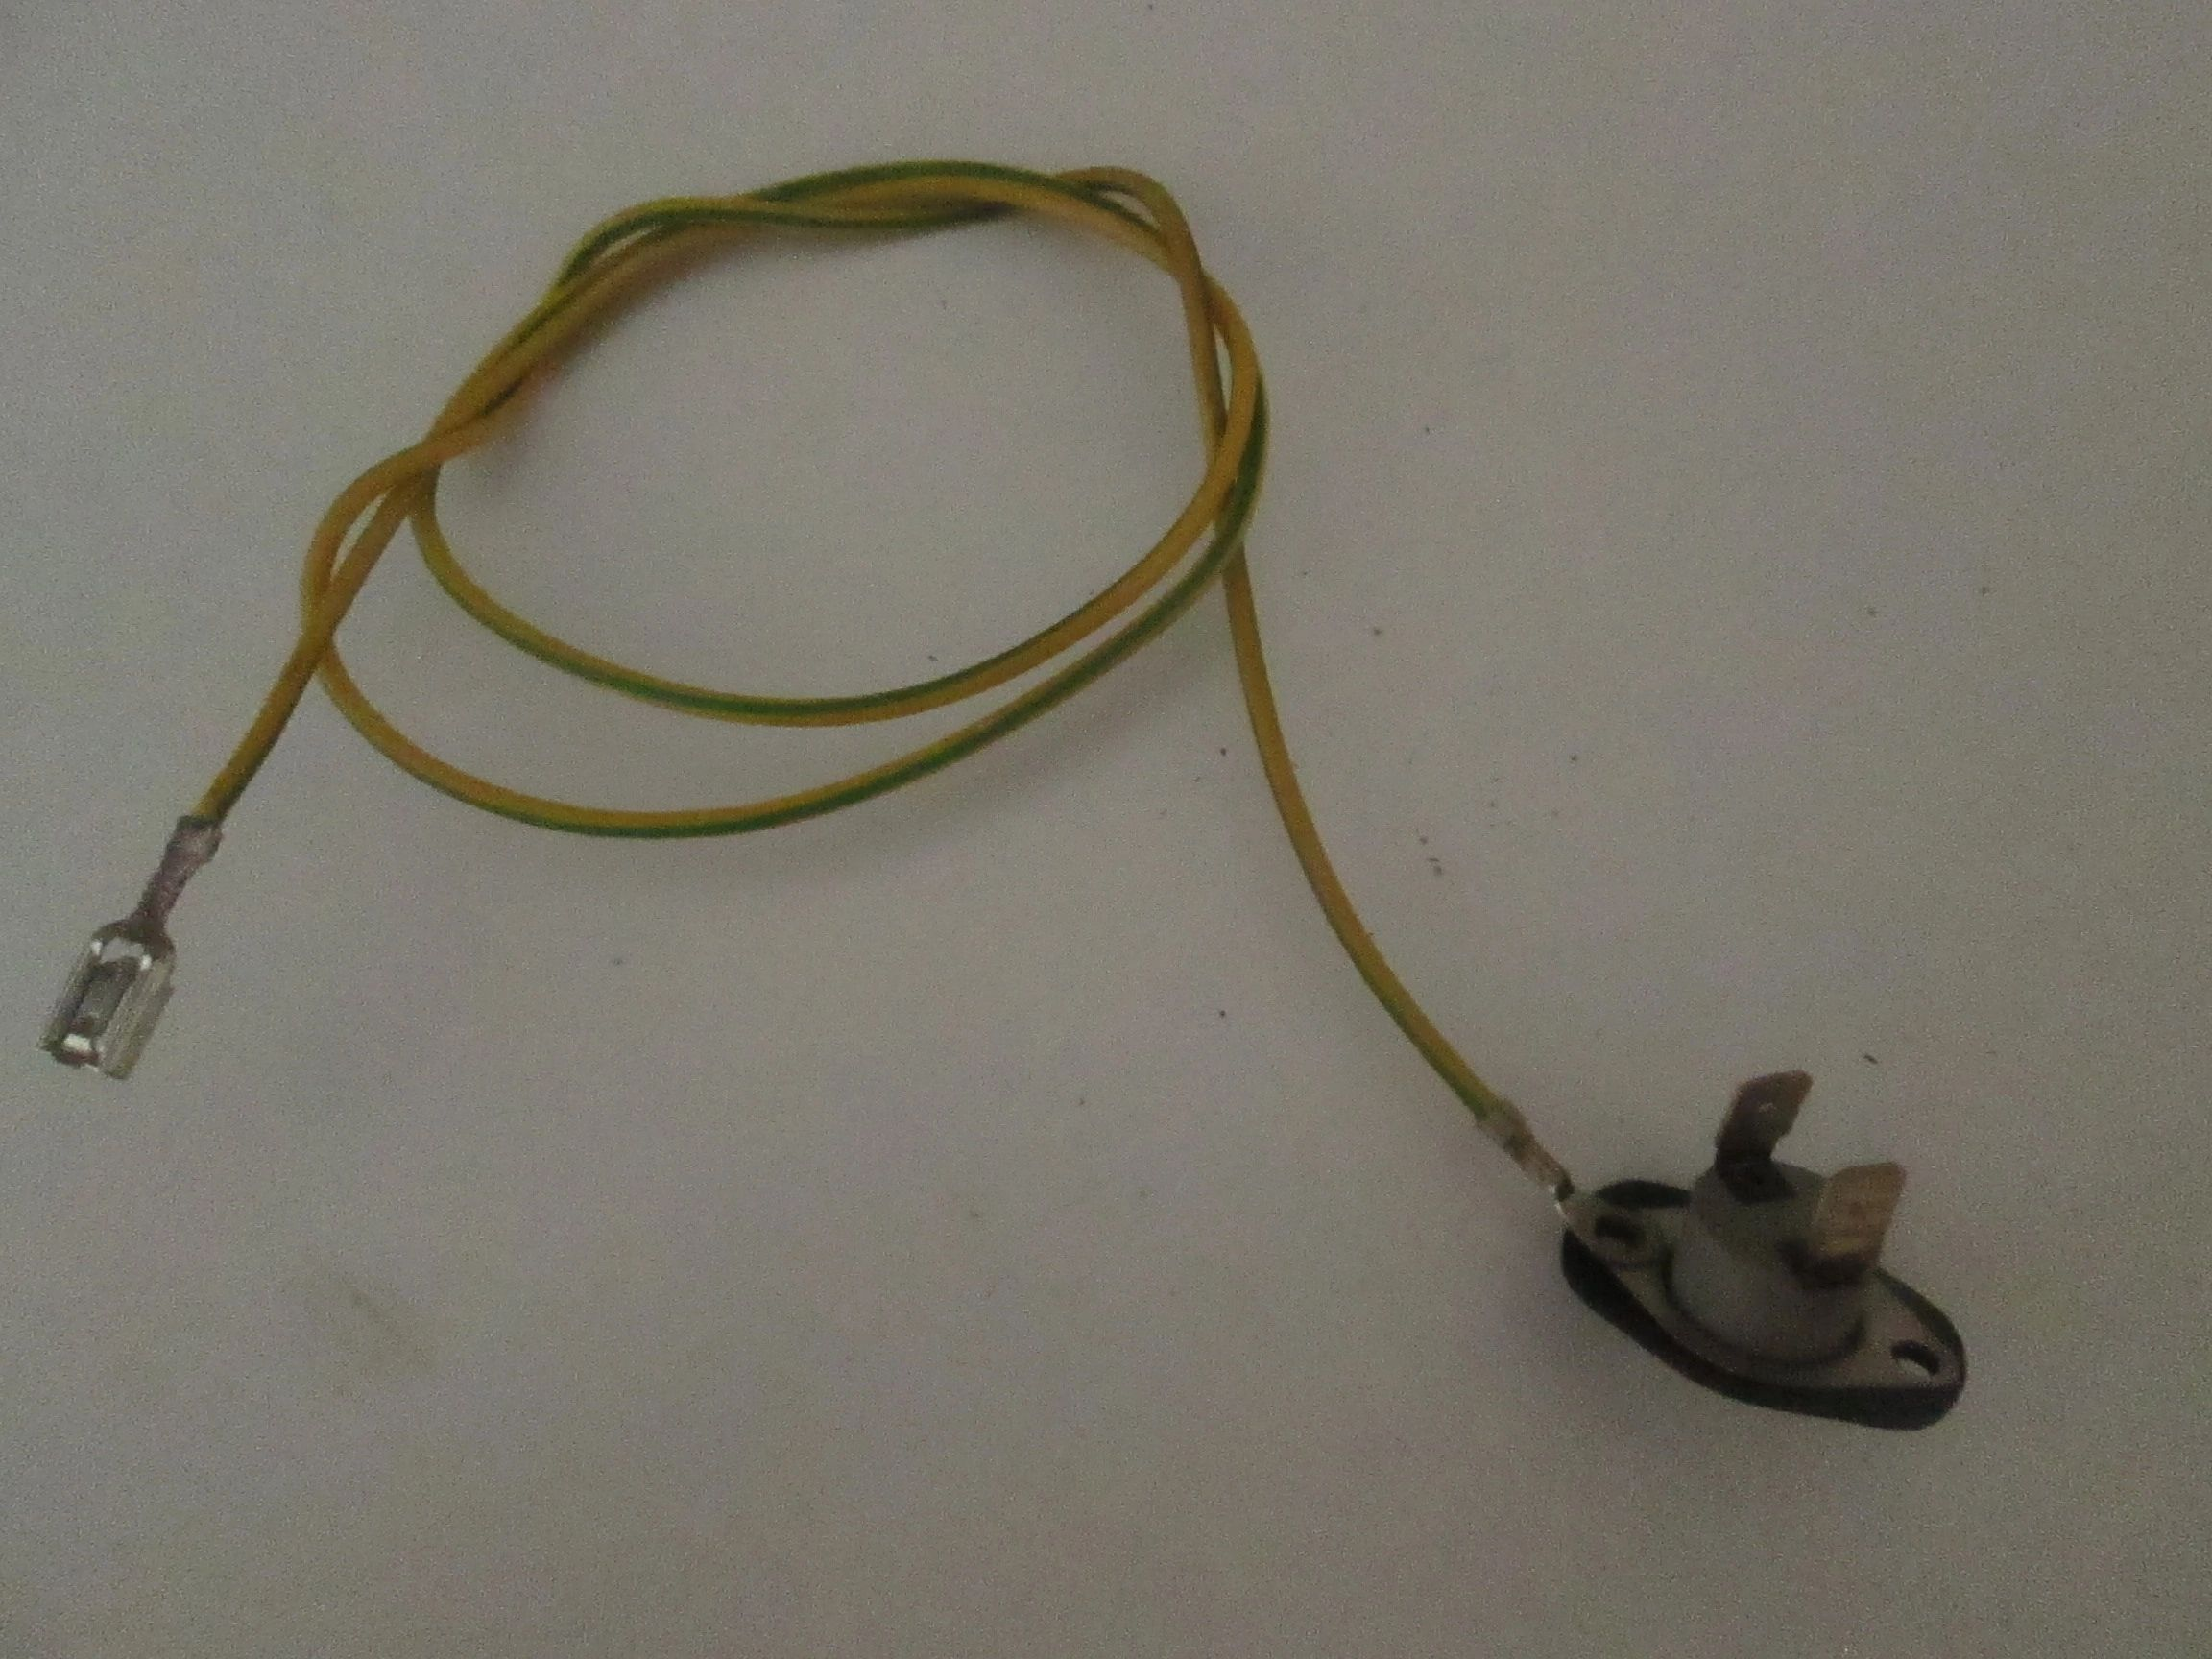 TYPE 279, Beko Genuine Tumble Dryer Thermistor NTC Earth Wire Cable and  Thermostat,TYPE 279,TYPE 279,TYPE 279,FULLY TESTED,TYPE 279,TYPE 279,TYPE  279,